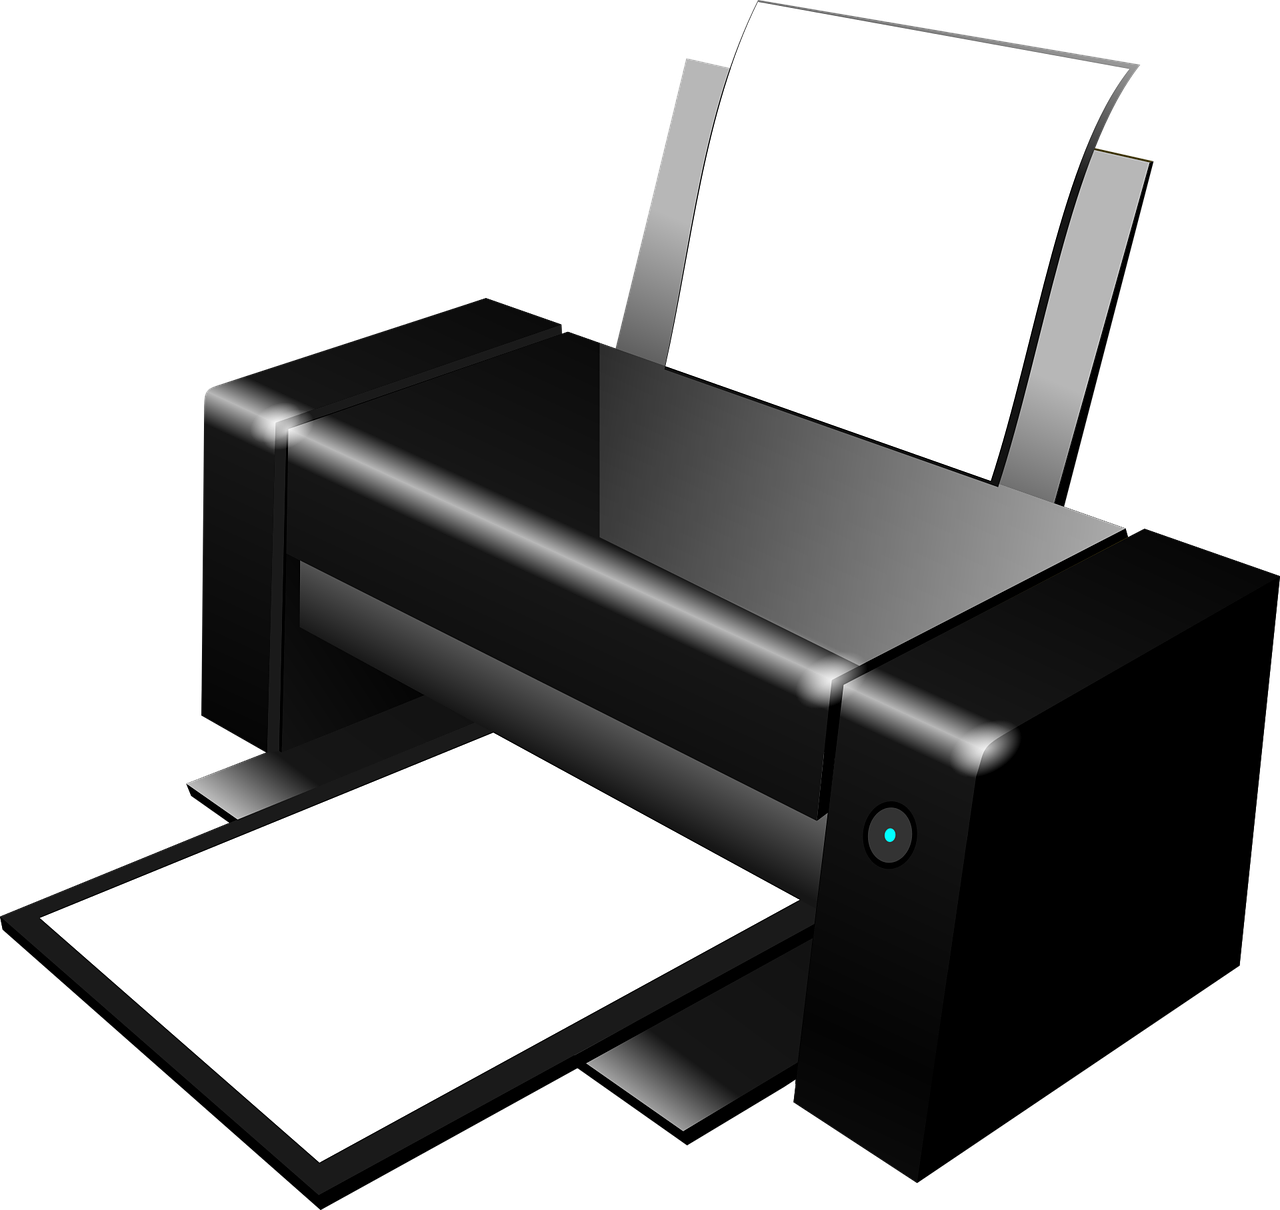 cheapest photocopy shop near me in Meerut